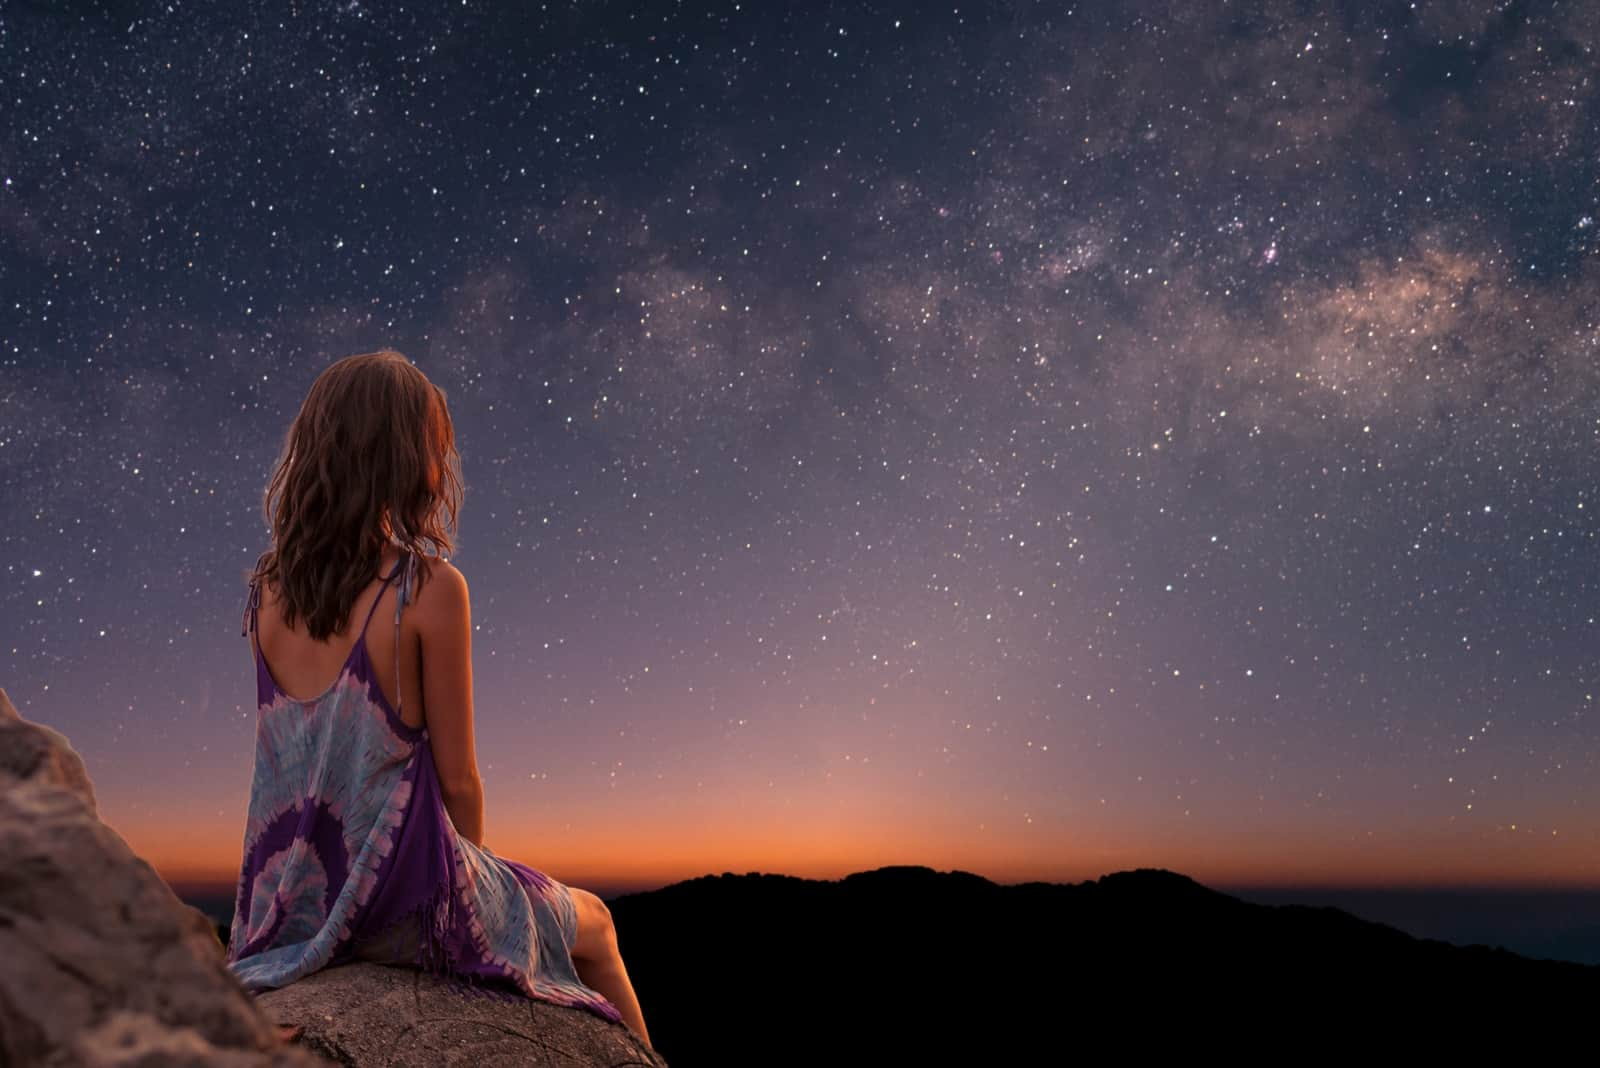 a woman sits on a rock and watches the stars in the sky